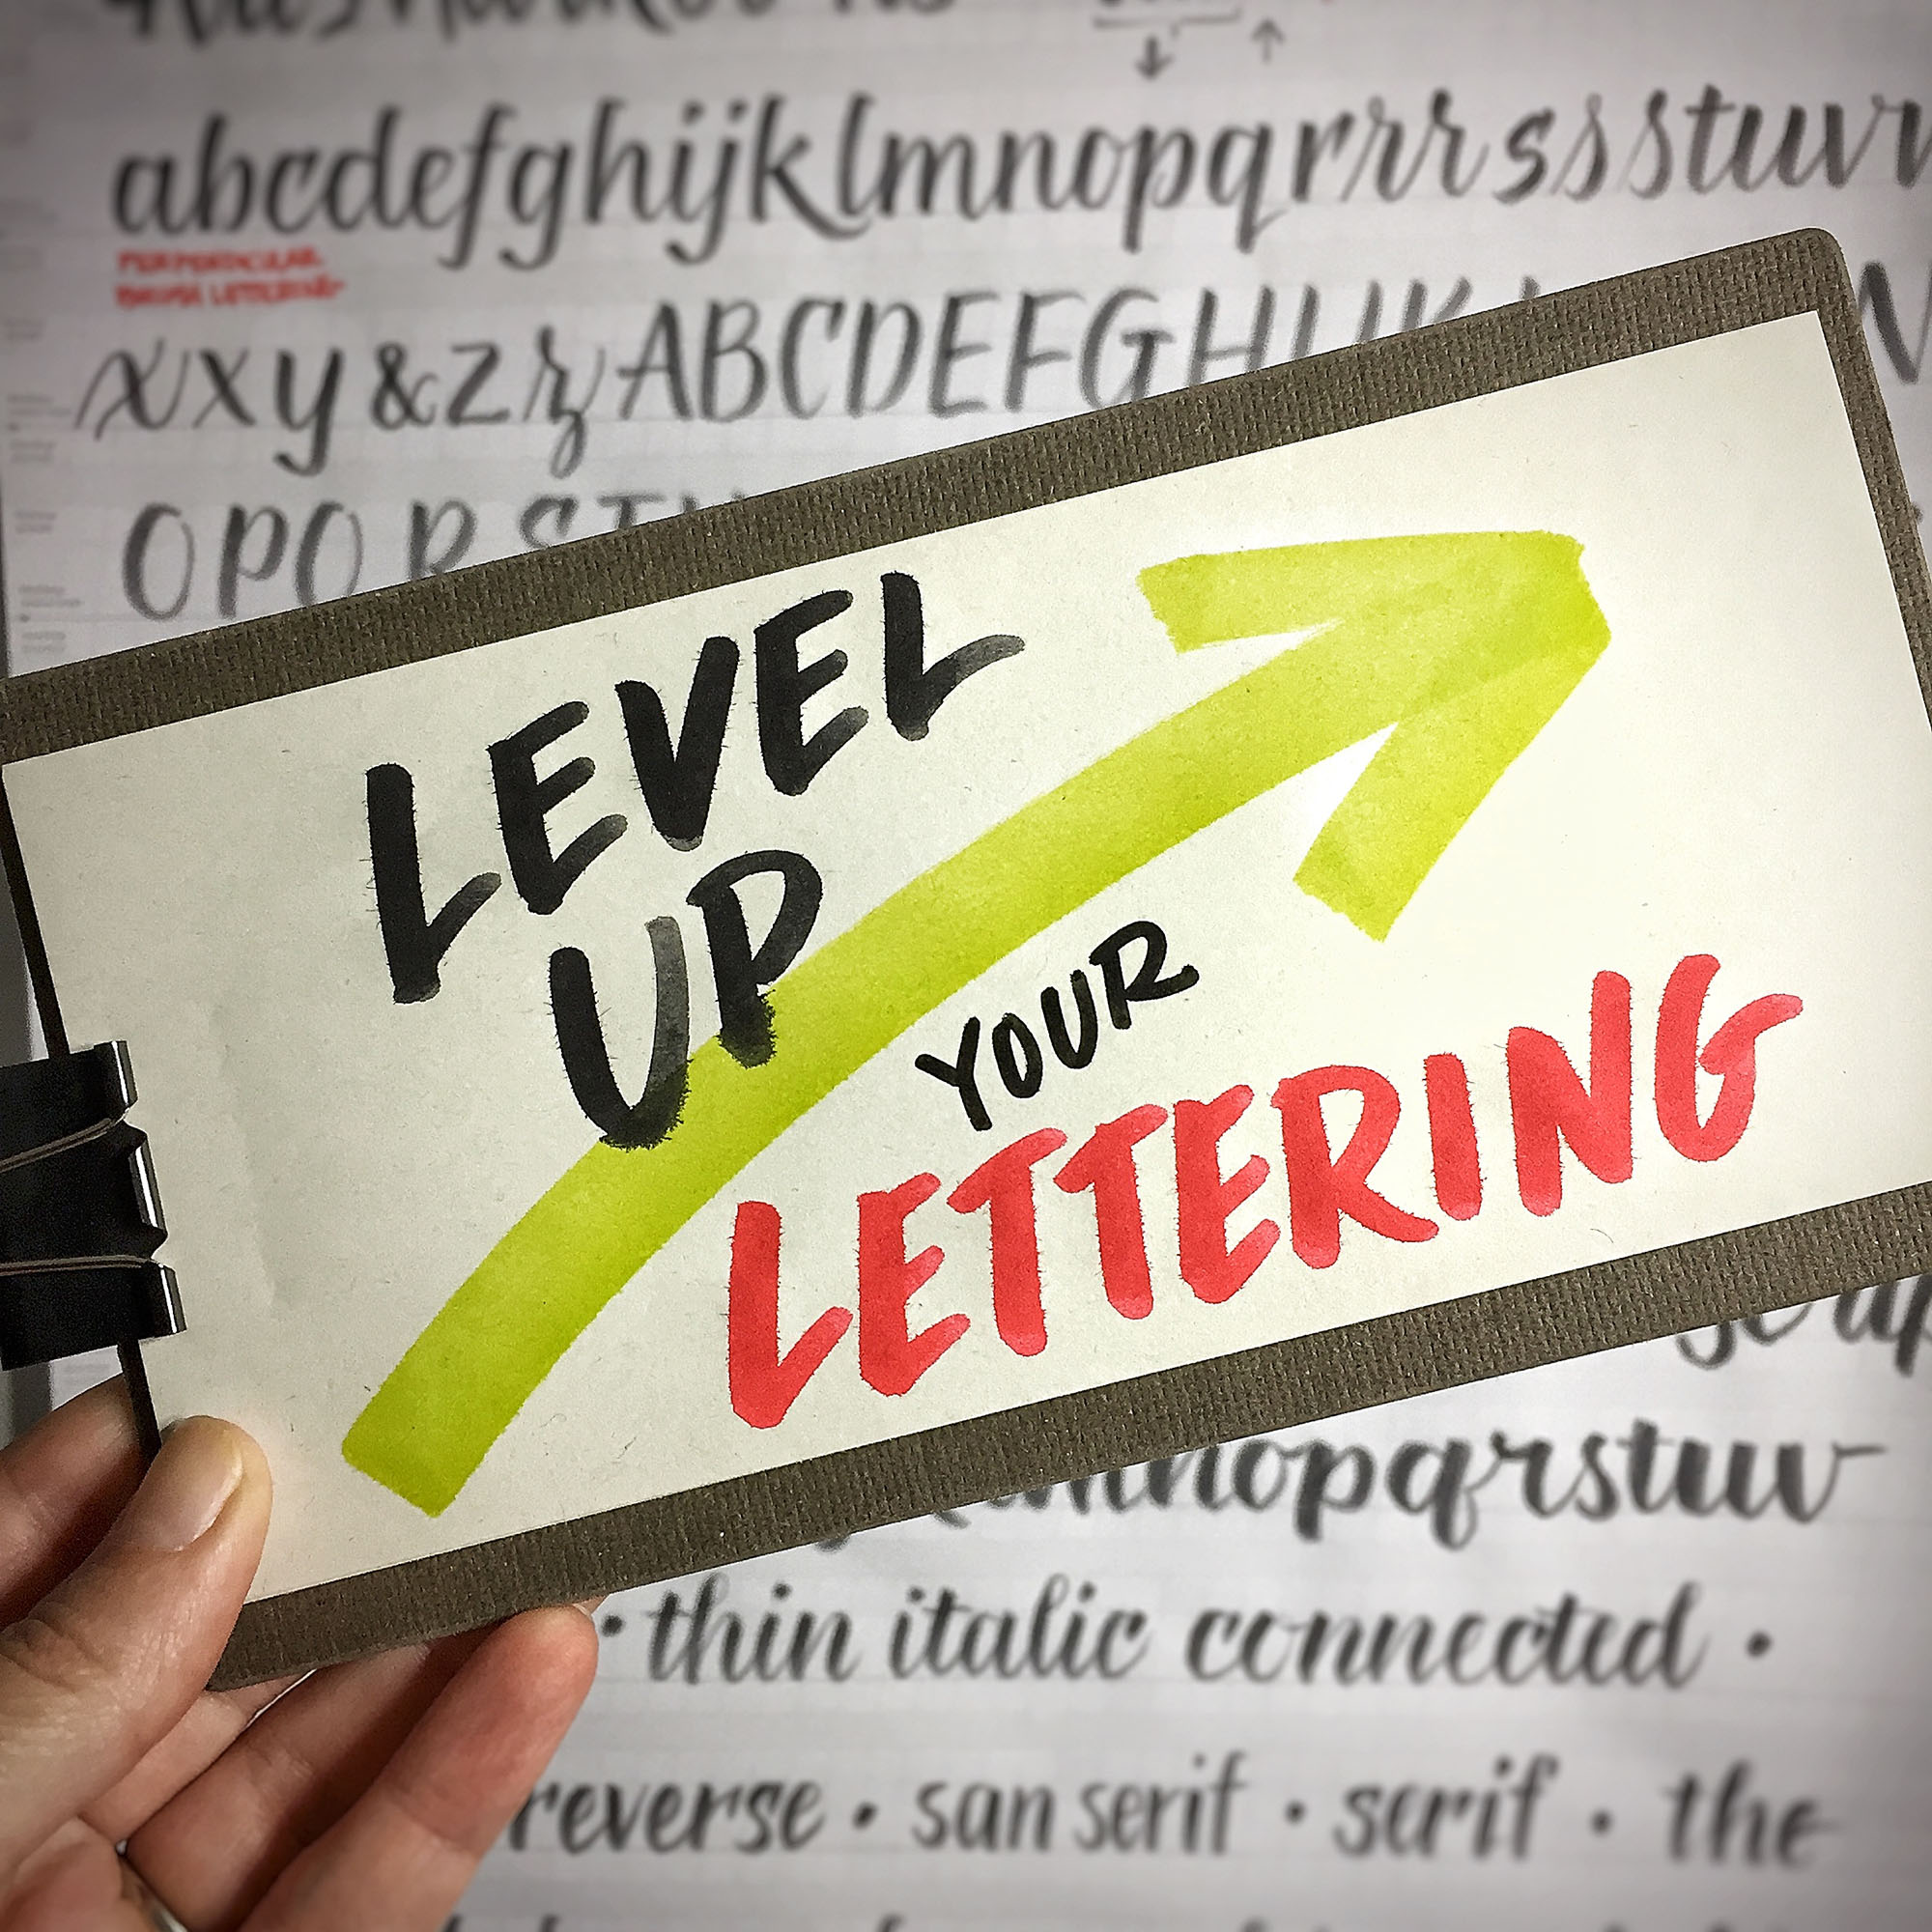 Lettering workshops designed with the visual practitioner in mind.